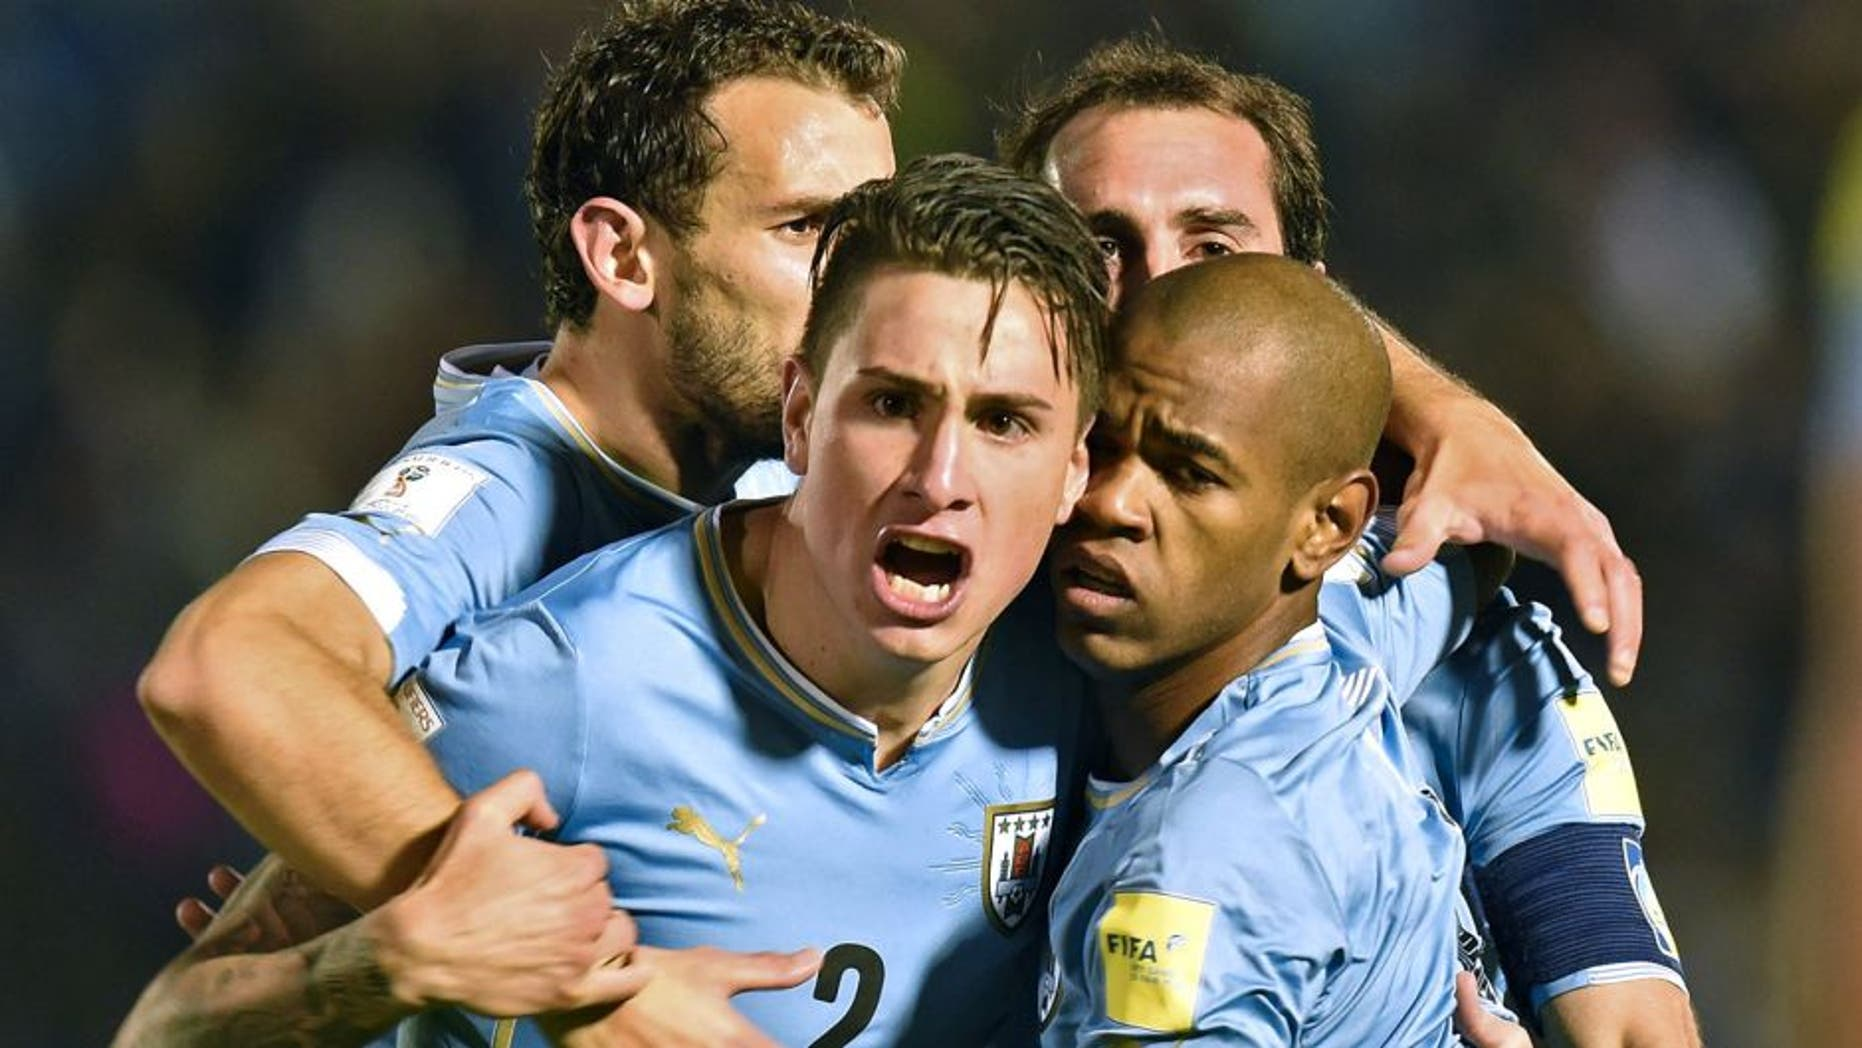 Uruguay's forward Diego Rolan (R, front) celebrates with teammates Jose Maria Gimenez (C), Christian Stuani (L) and Diego Godin after scoring against Colombia during their Russia 2018 FIFA World Cup South American Qualifiers football match, at the Estadio Centenario stadium in Montevideo, on October 13, 2015. AFP PHOTO / PABLO PORCIUNCULA (Photo credit should read PABLO PORCIUNCULA/AFP/Getty Images)